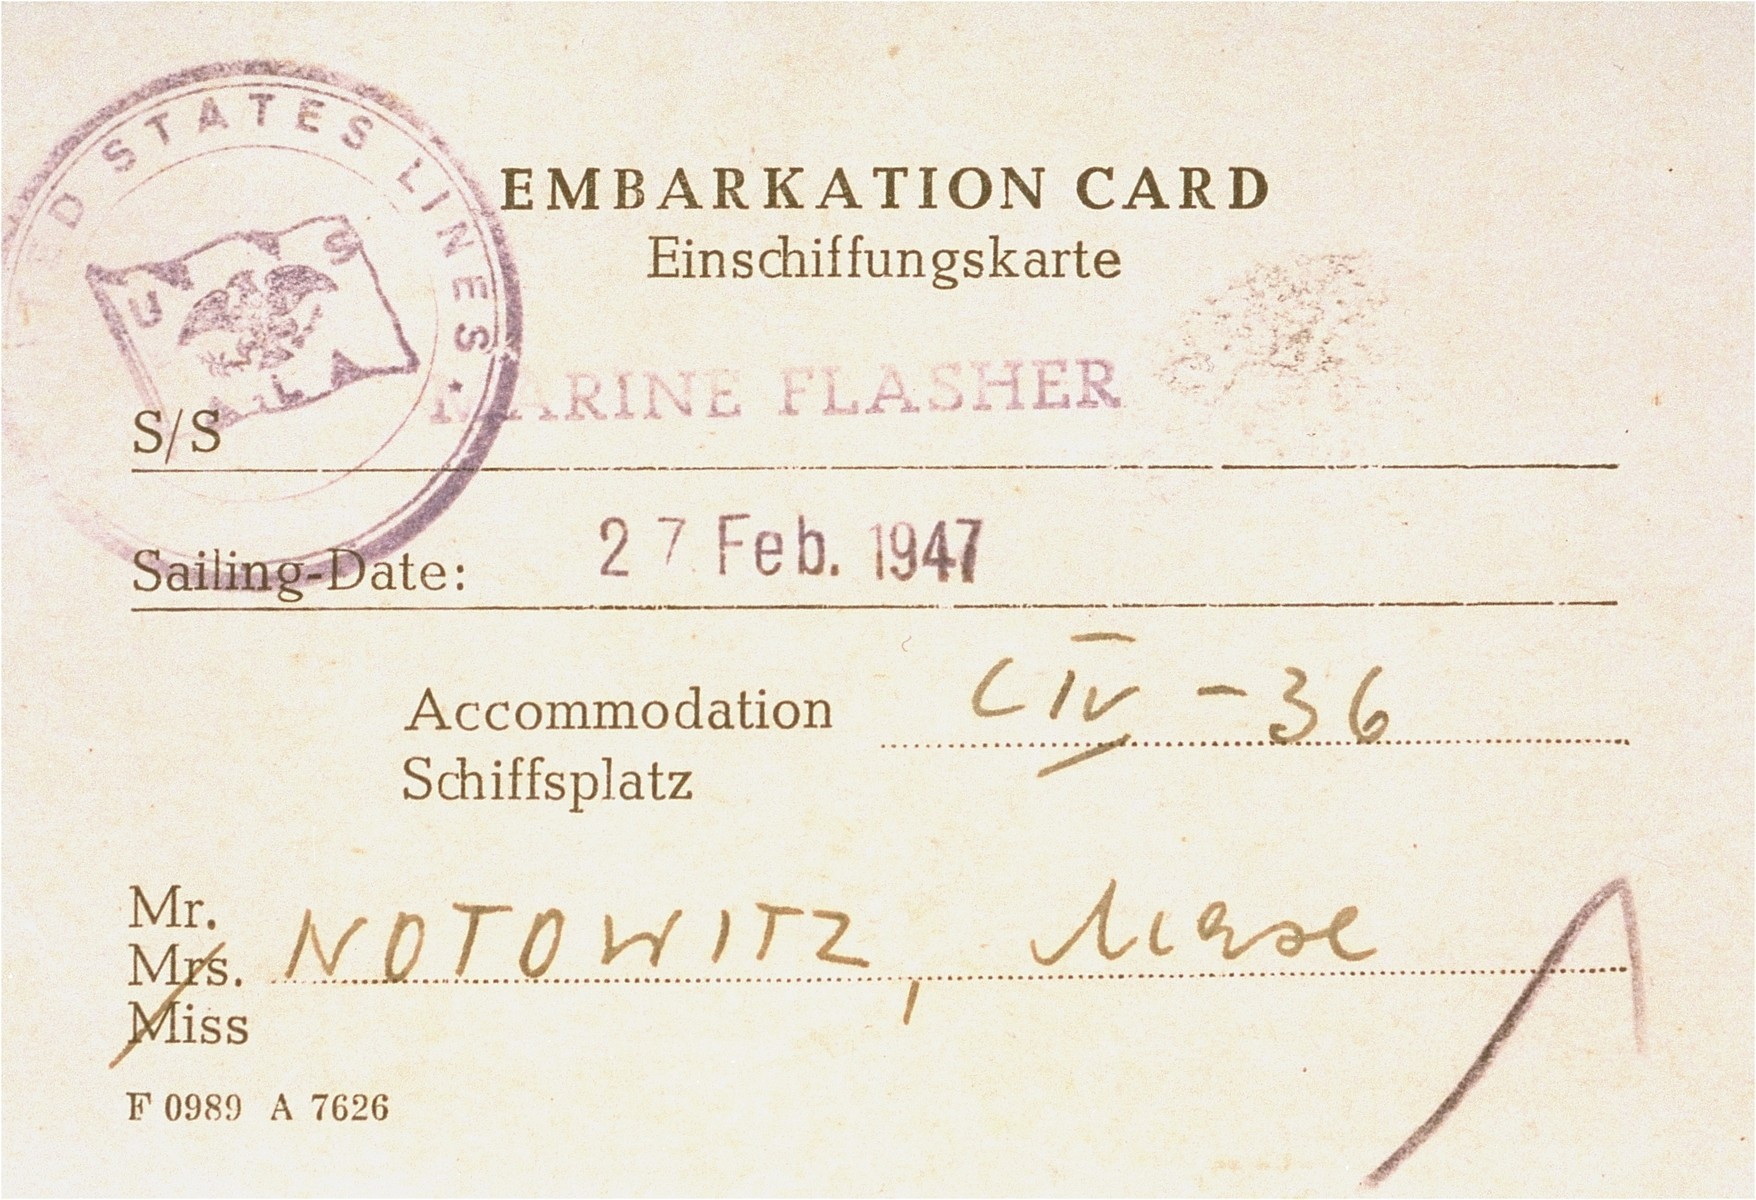 Boarding pass issued to Manius Notowicz for travel on the Marine Flasher to New York.